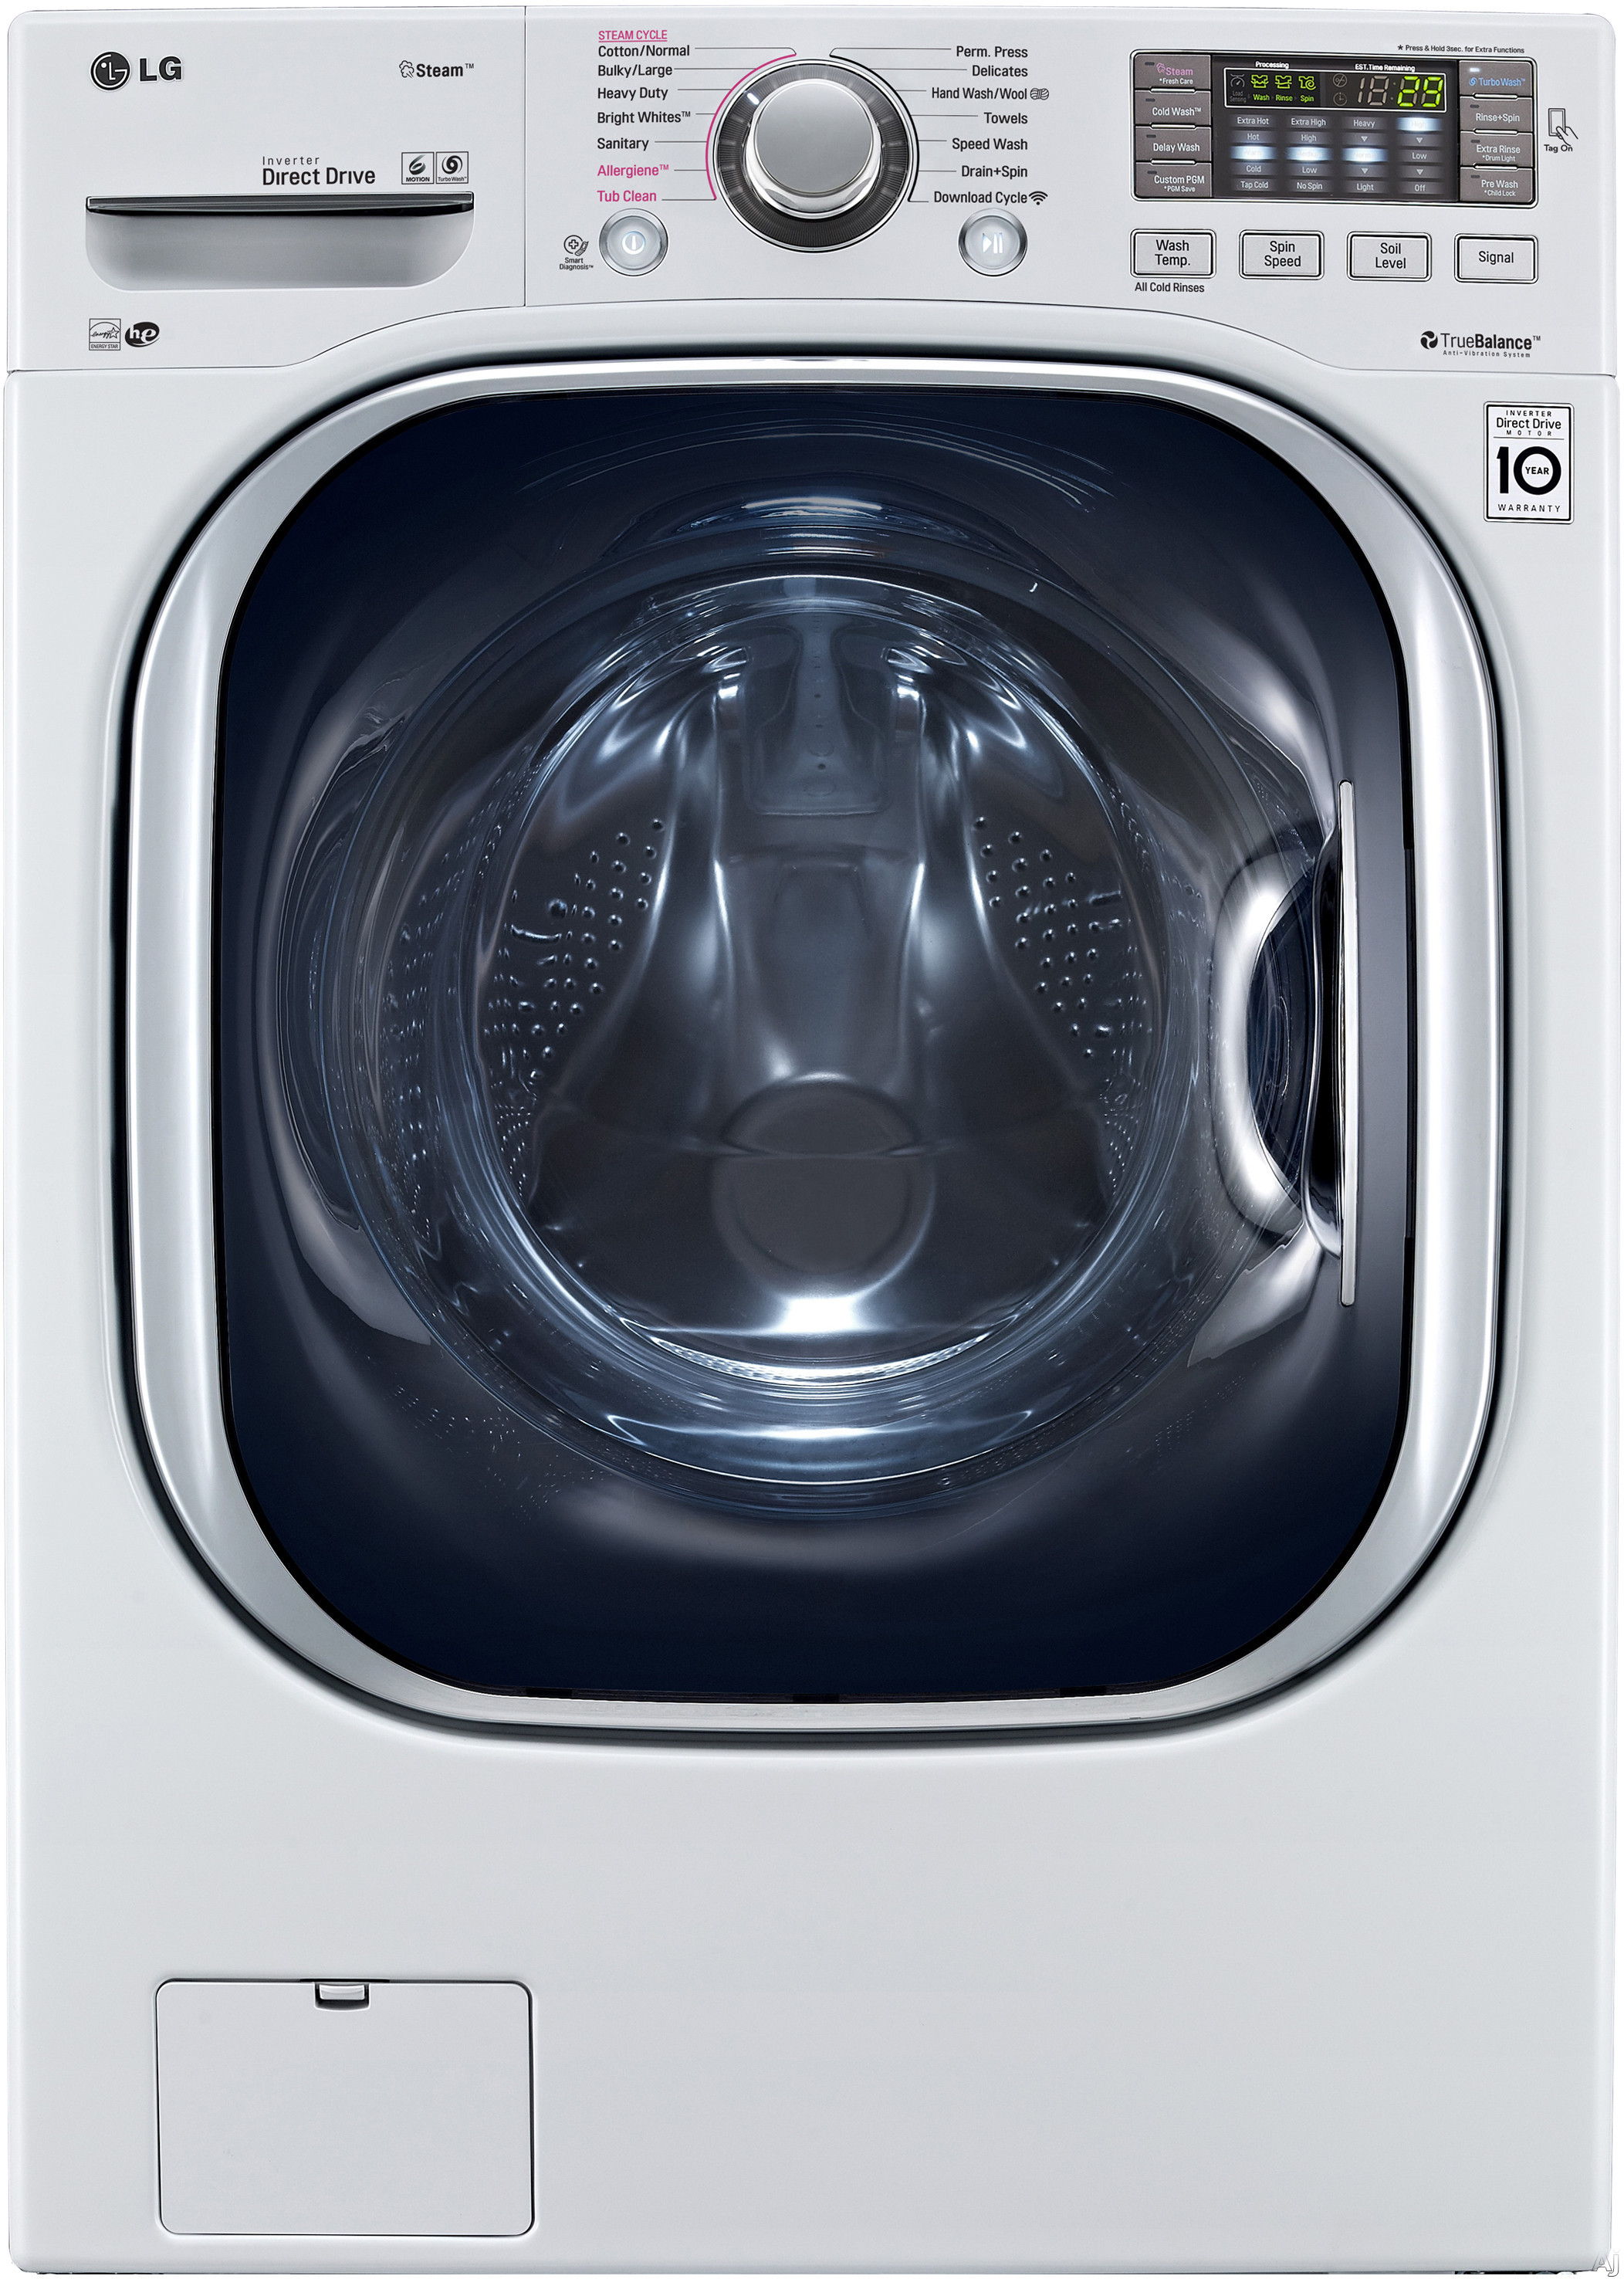 LG WM4370 27 Inch Front Load Washer with 4.5 cu. ft. Capacity, 14 Wash Programs, Steam, TurboWash, Speed Wash, Allergiene Cycle, Sanitary Cycle, 4-Tray Dispenser, LoDecibel Quiet Operation and ENERGY STAR Qualification